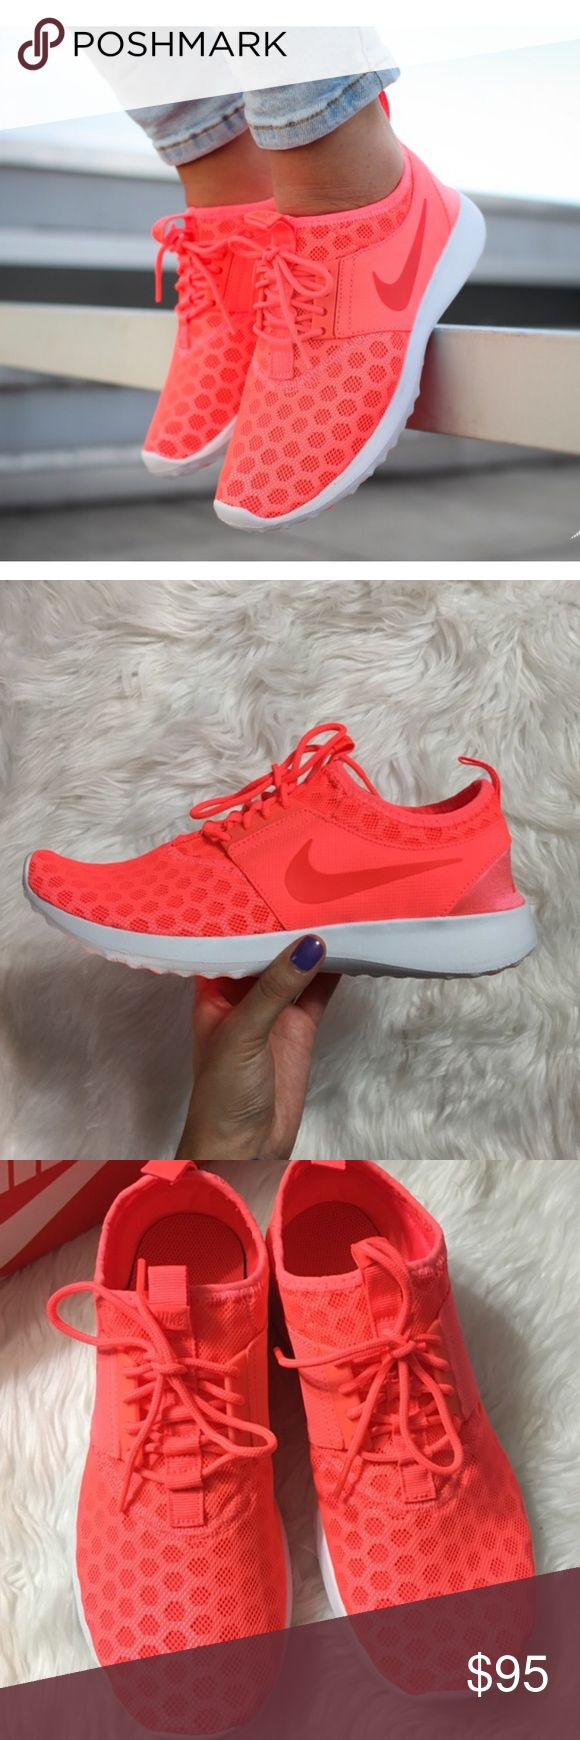 Women's Nike Juvenate Zenji Brand new with the box but no lid. Color is hot lava/bright crimson Nike Shoes Athletic Shoes